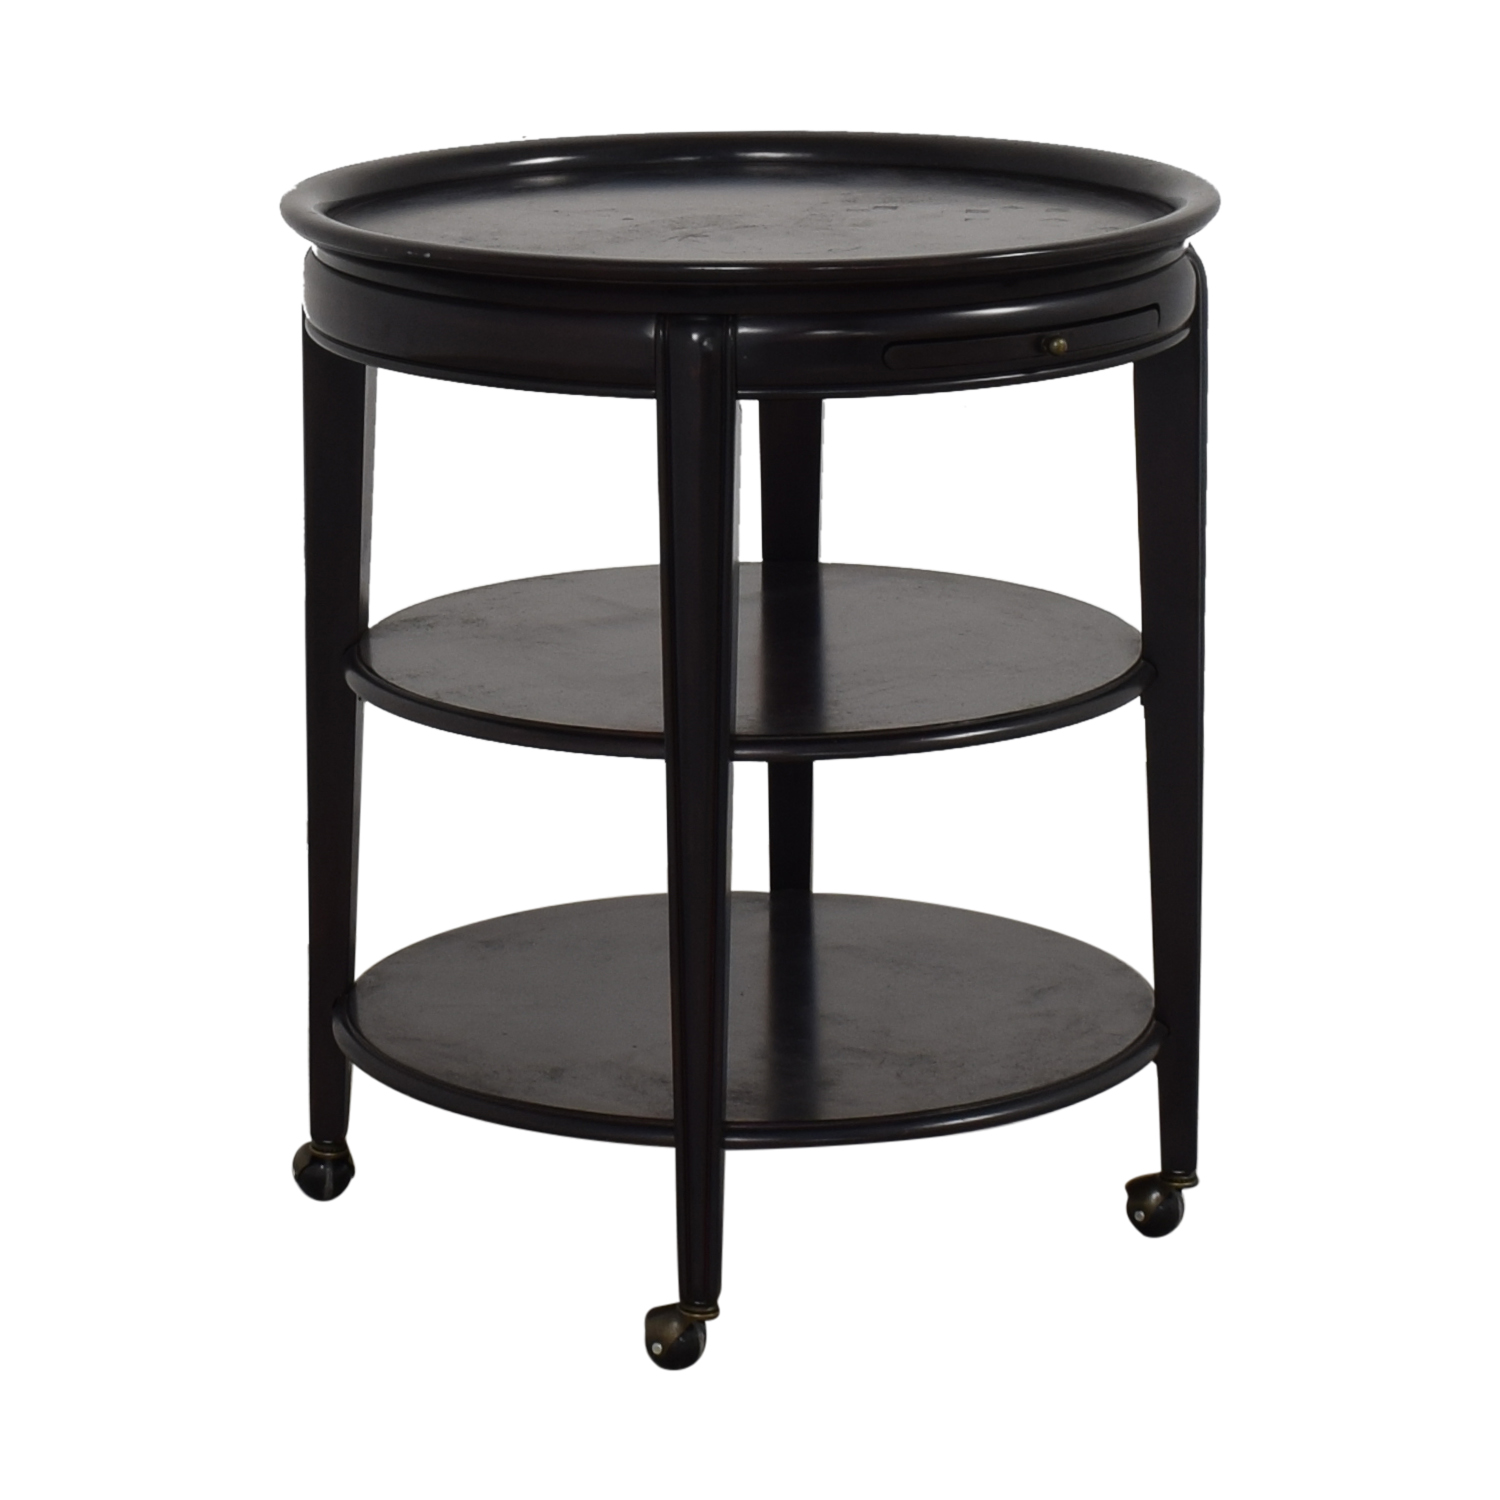 Hooker Furniture Seven Seas by Hooker Furniture Circular Accent Table